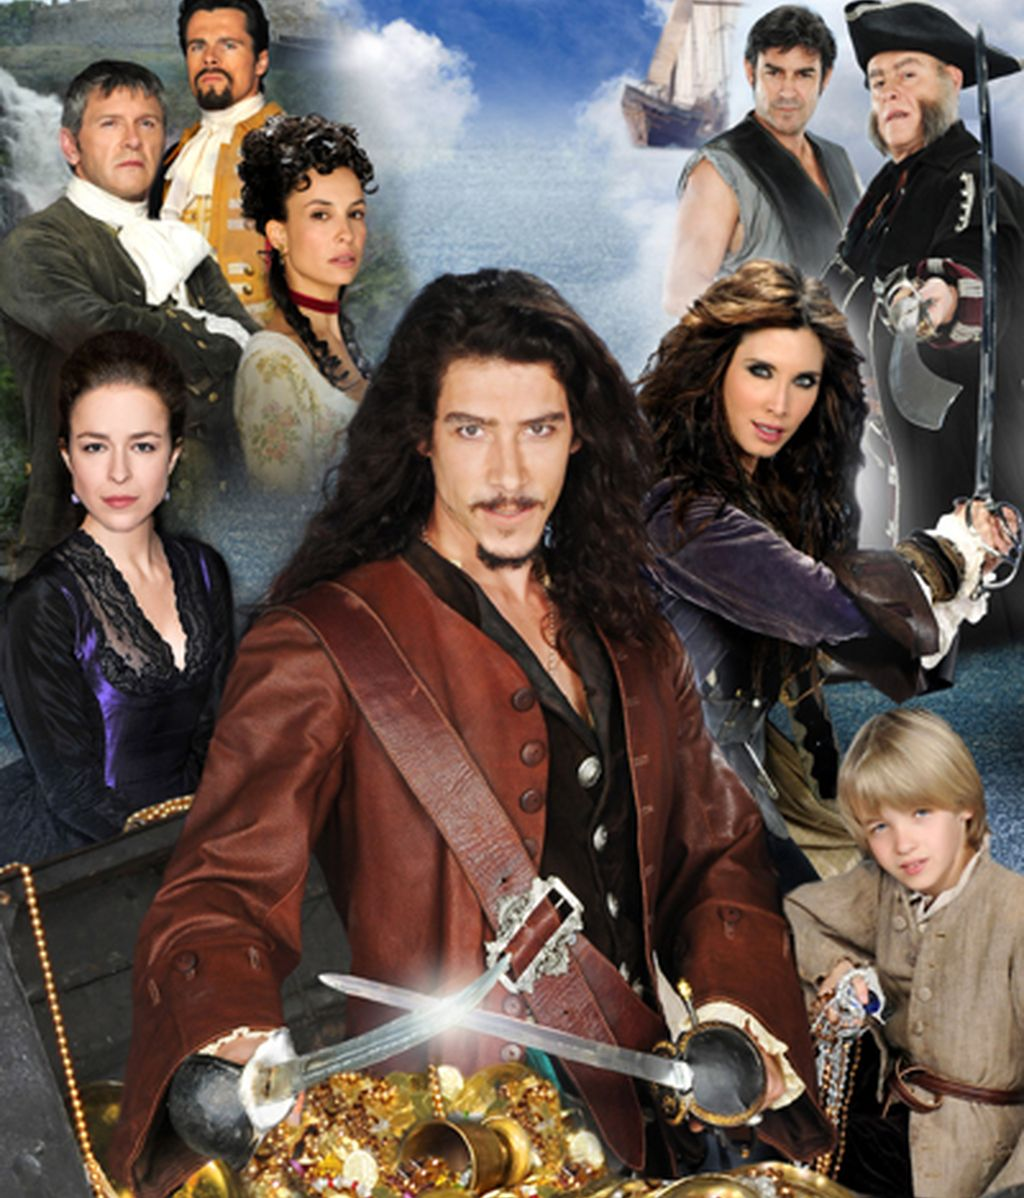 'Piratas' (Telecinco)